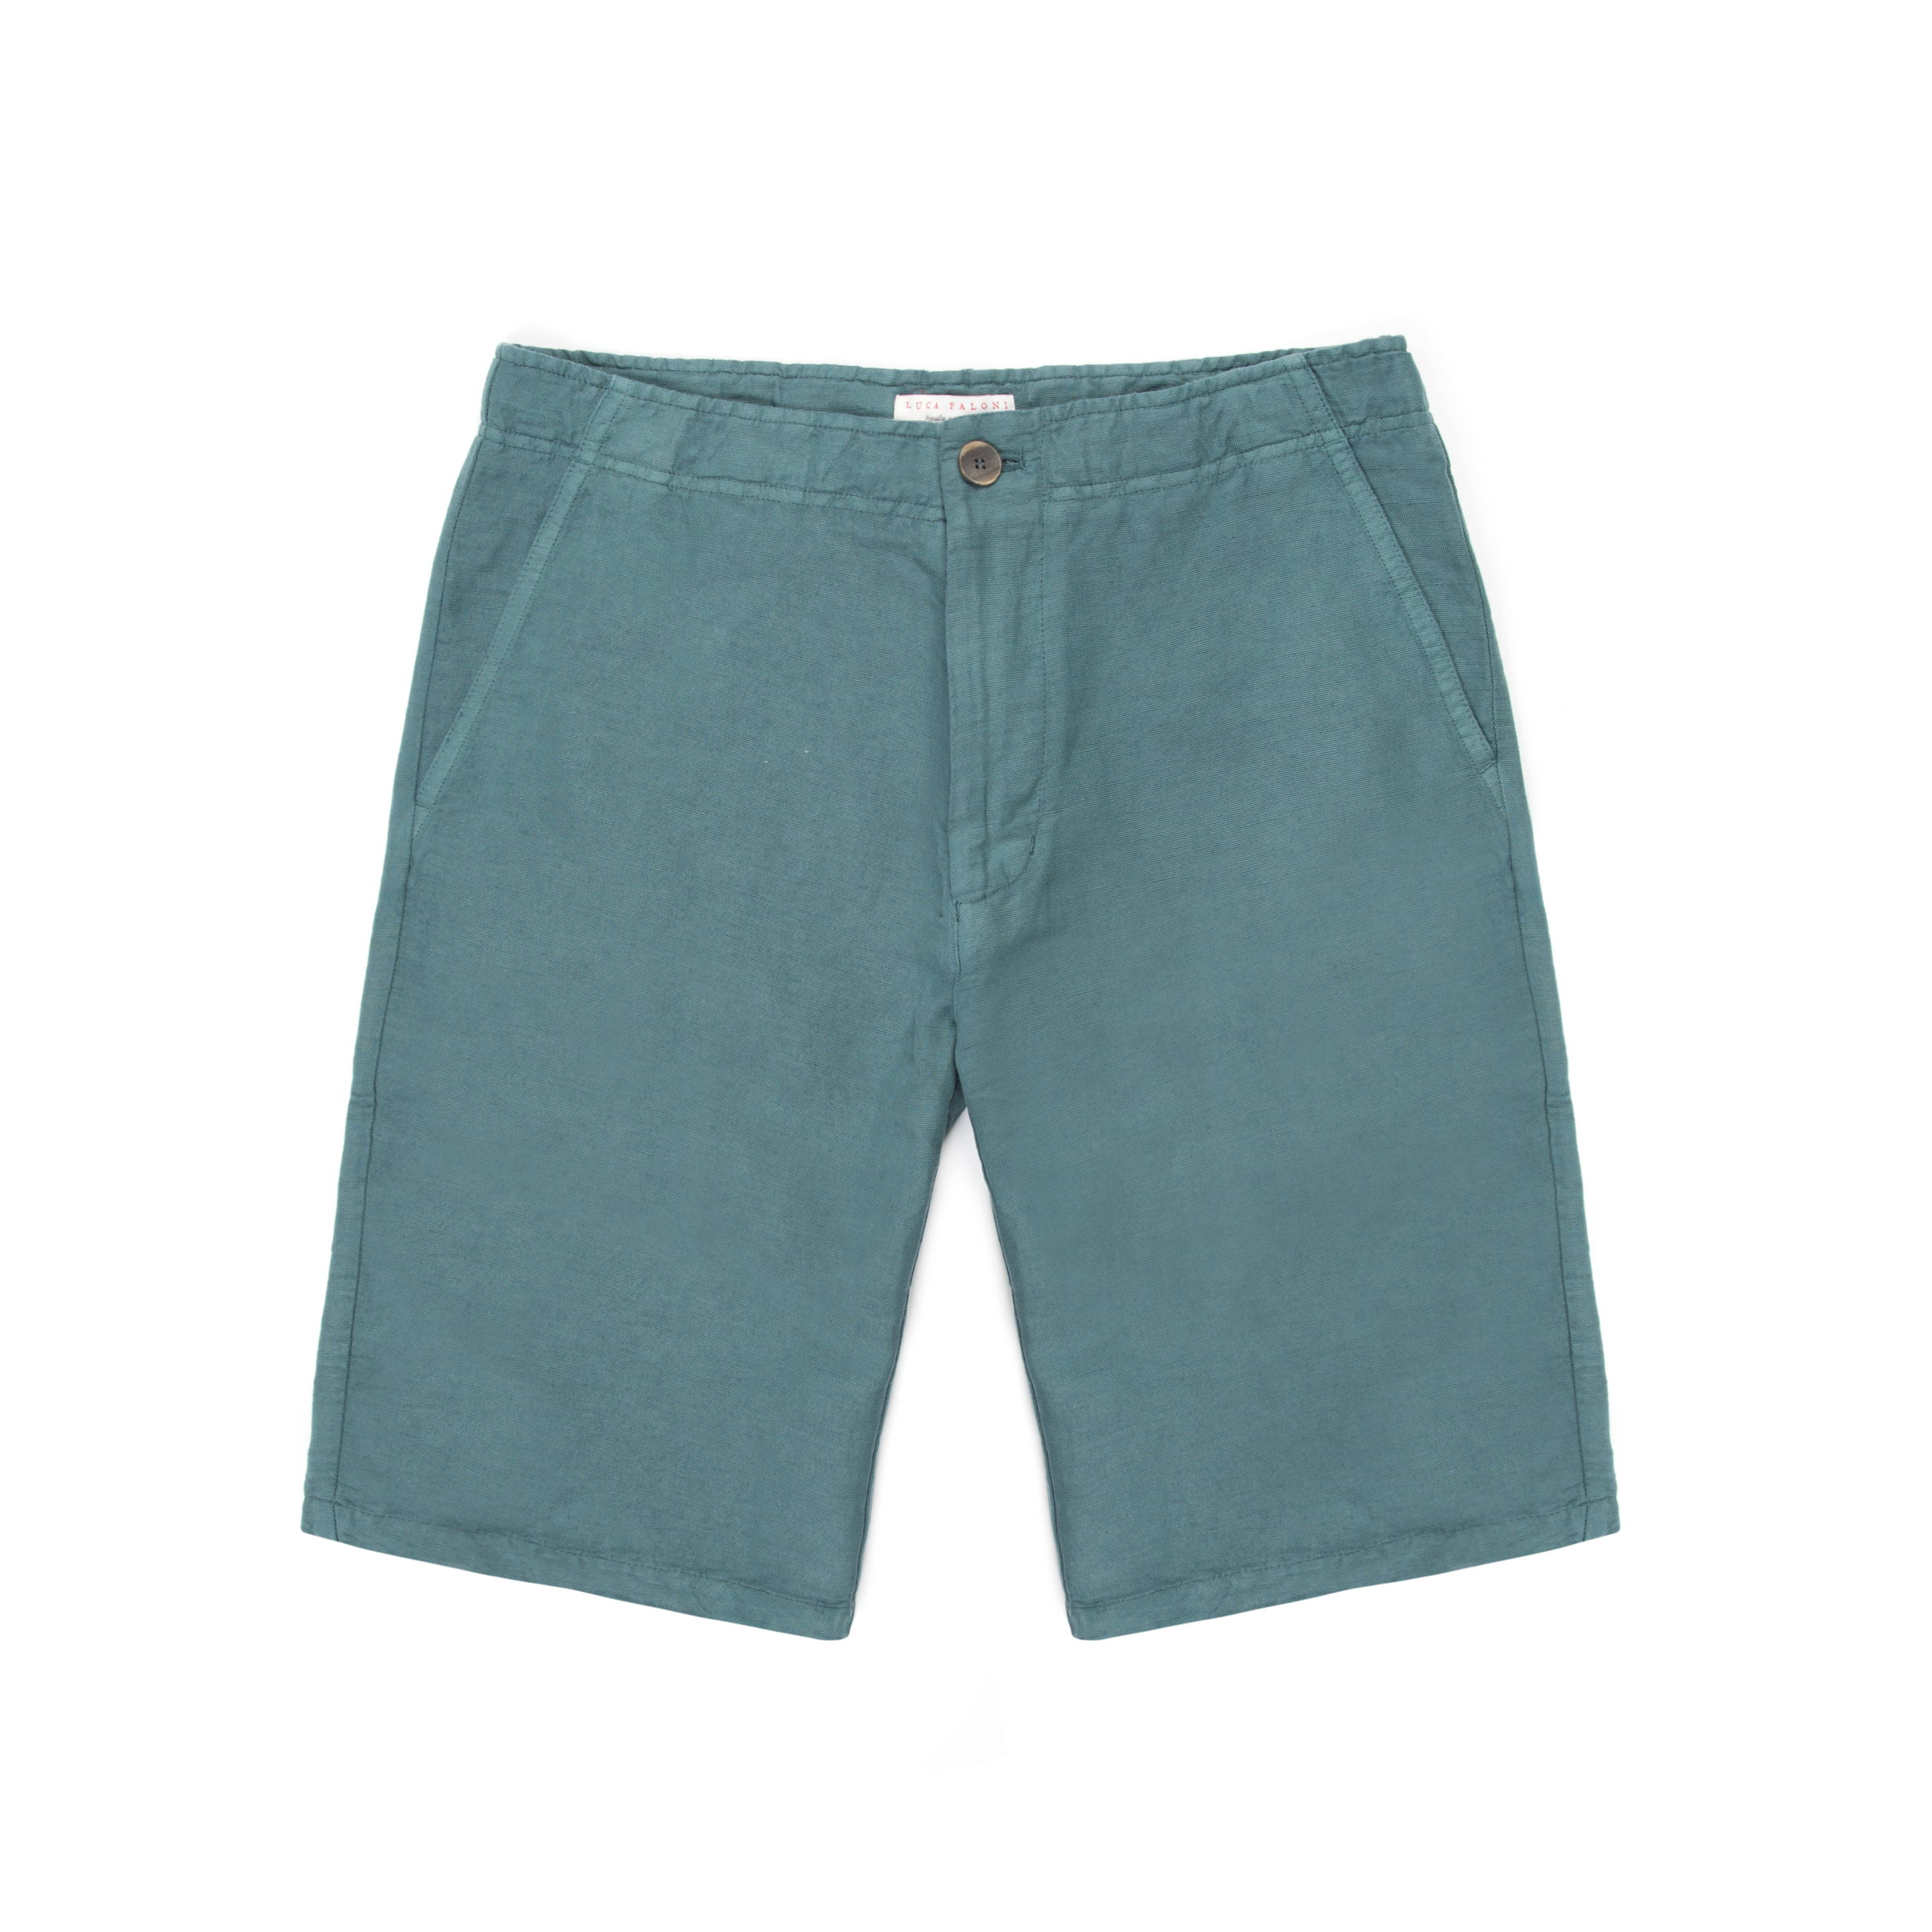 Luca Faloni Marine Green Panarea Linen Shorts Made in Italy